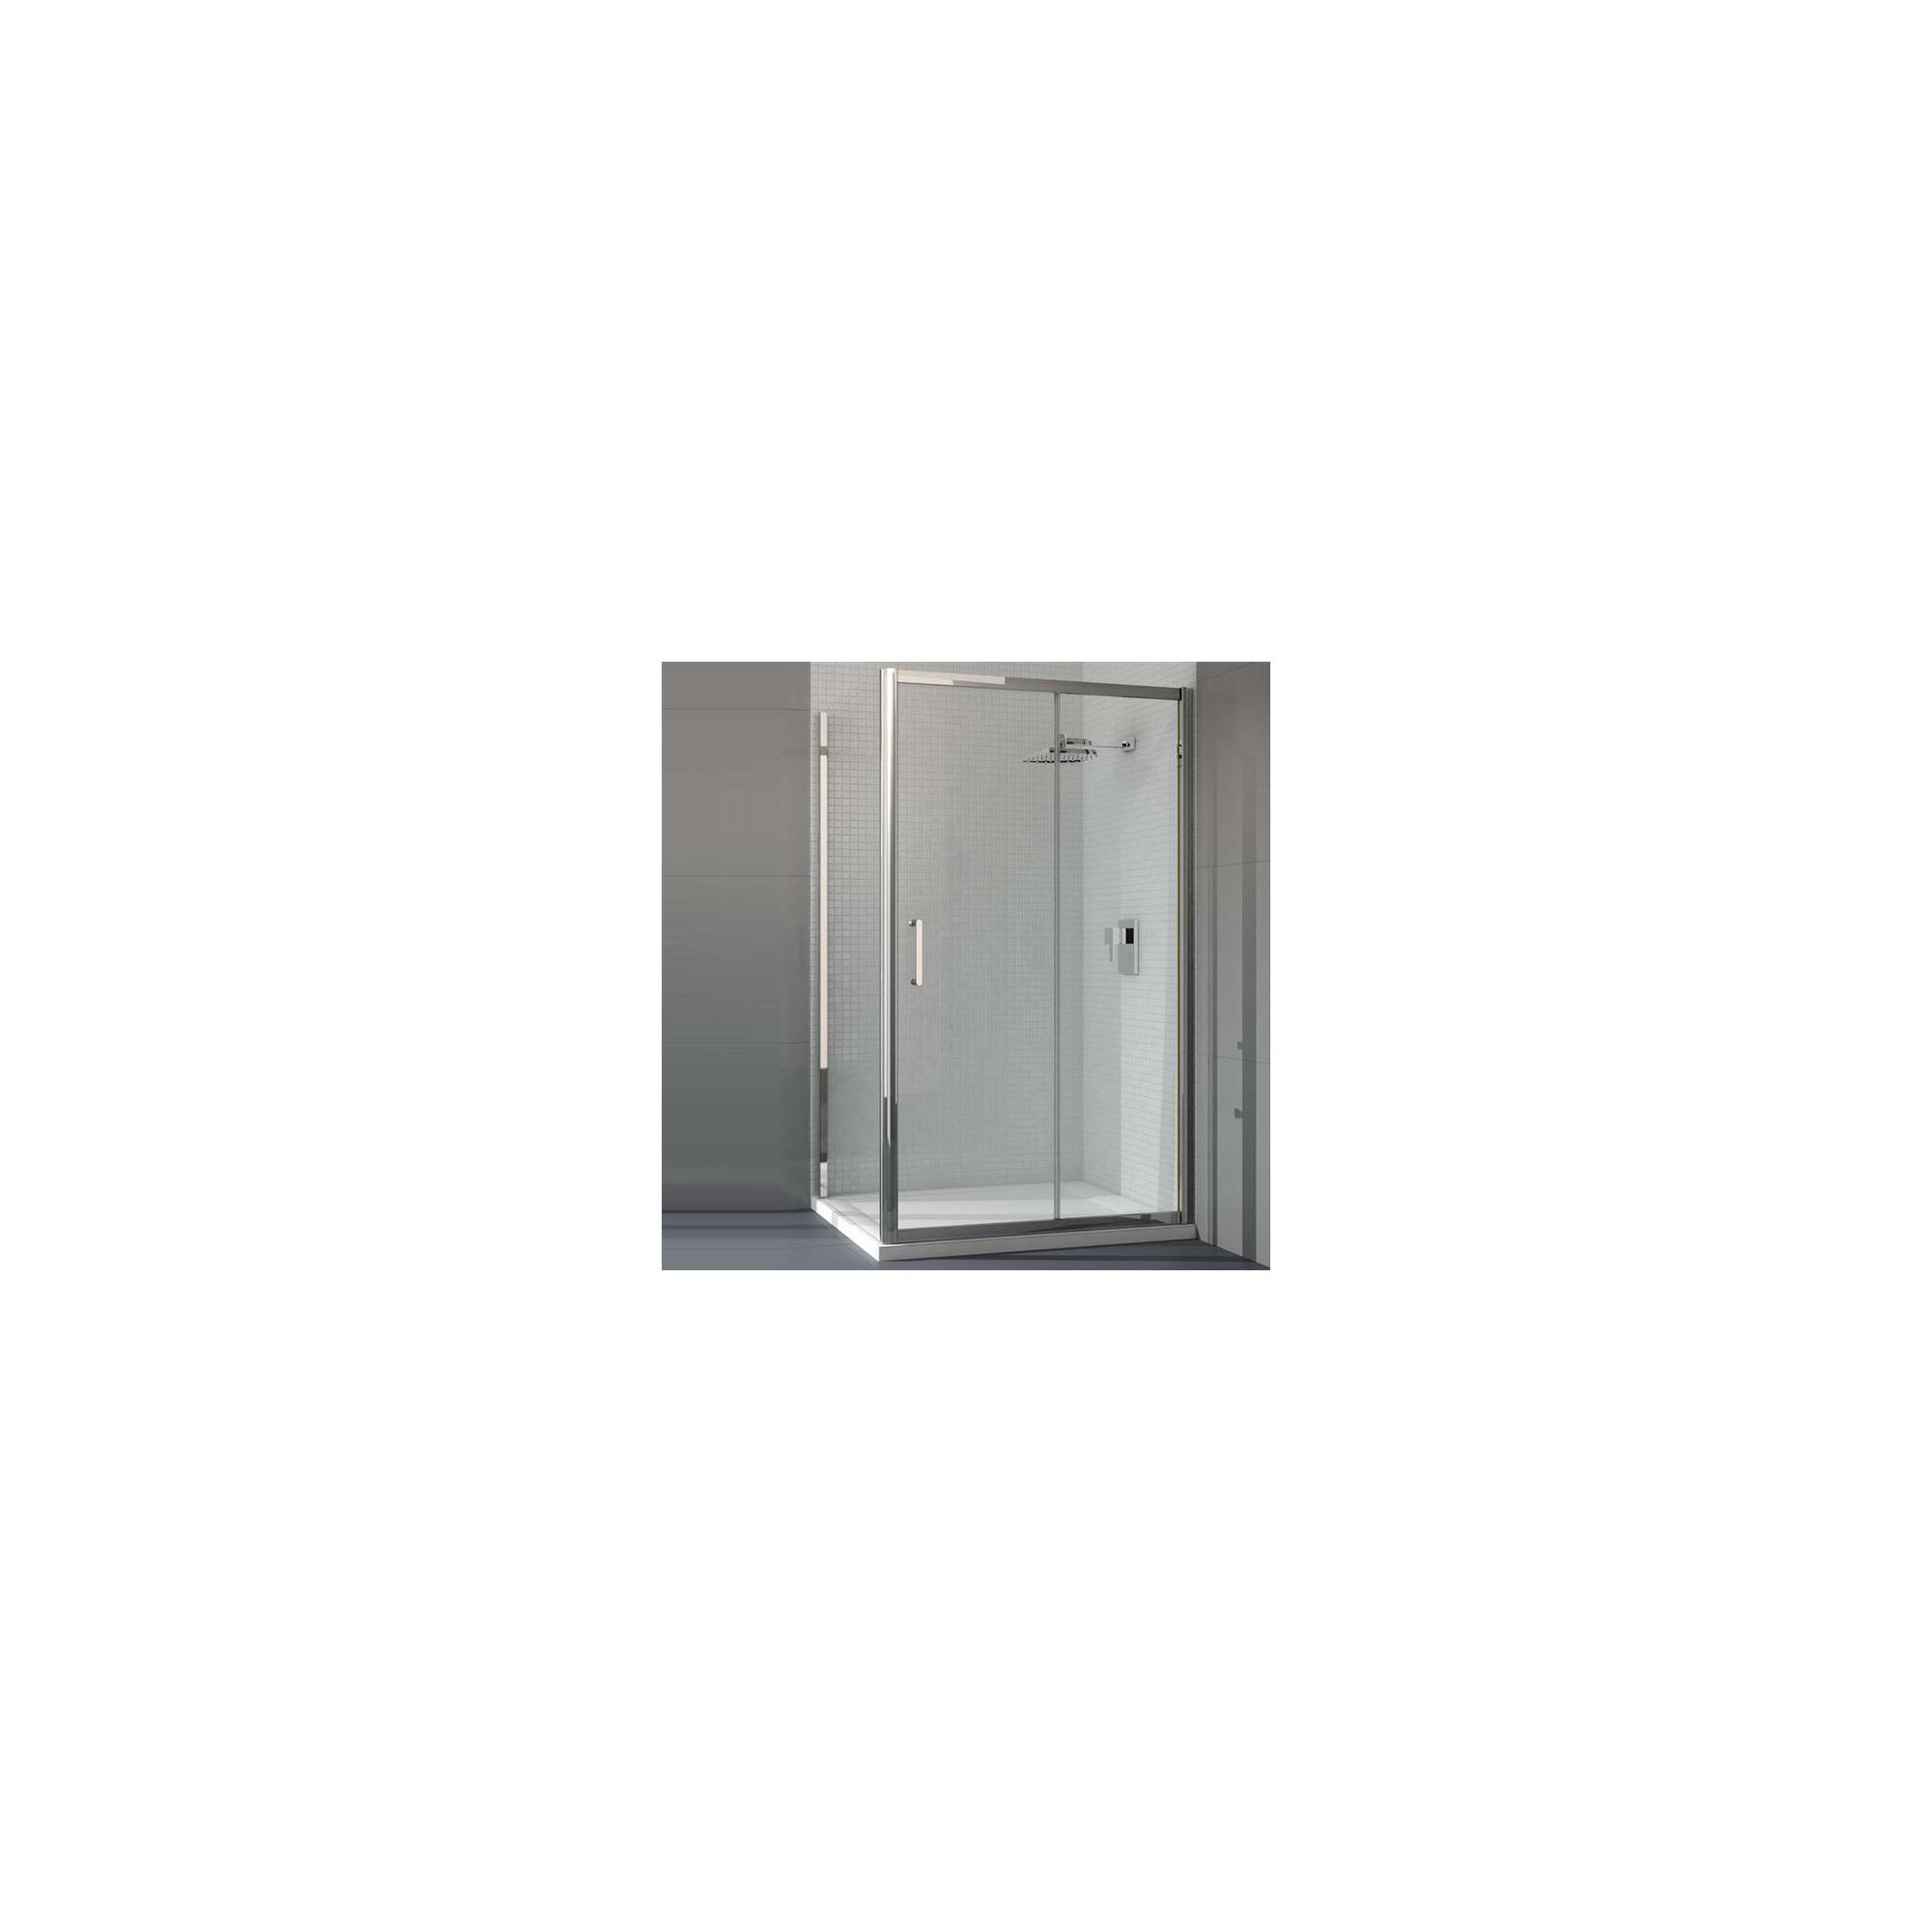 Merlyn Vivid Six Sliding Door Shower Enclosure, 1600mm x 800mm, Low Profile Tray, 6mm Glass at Tesco Direct